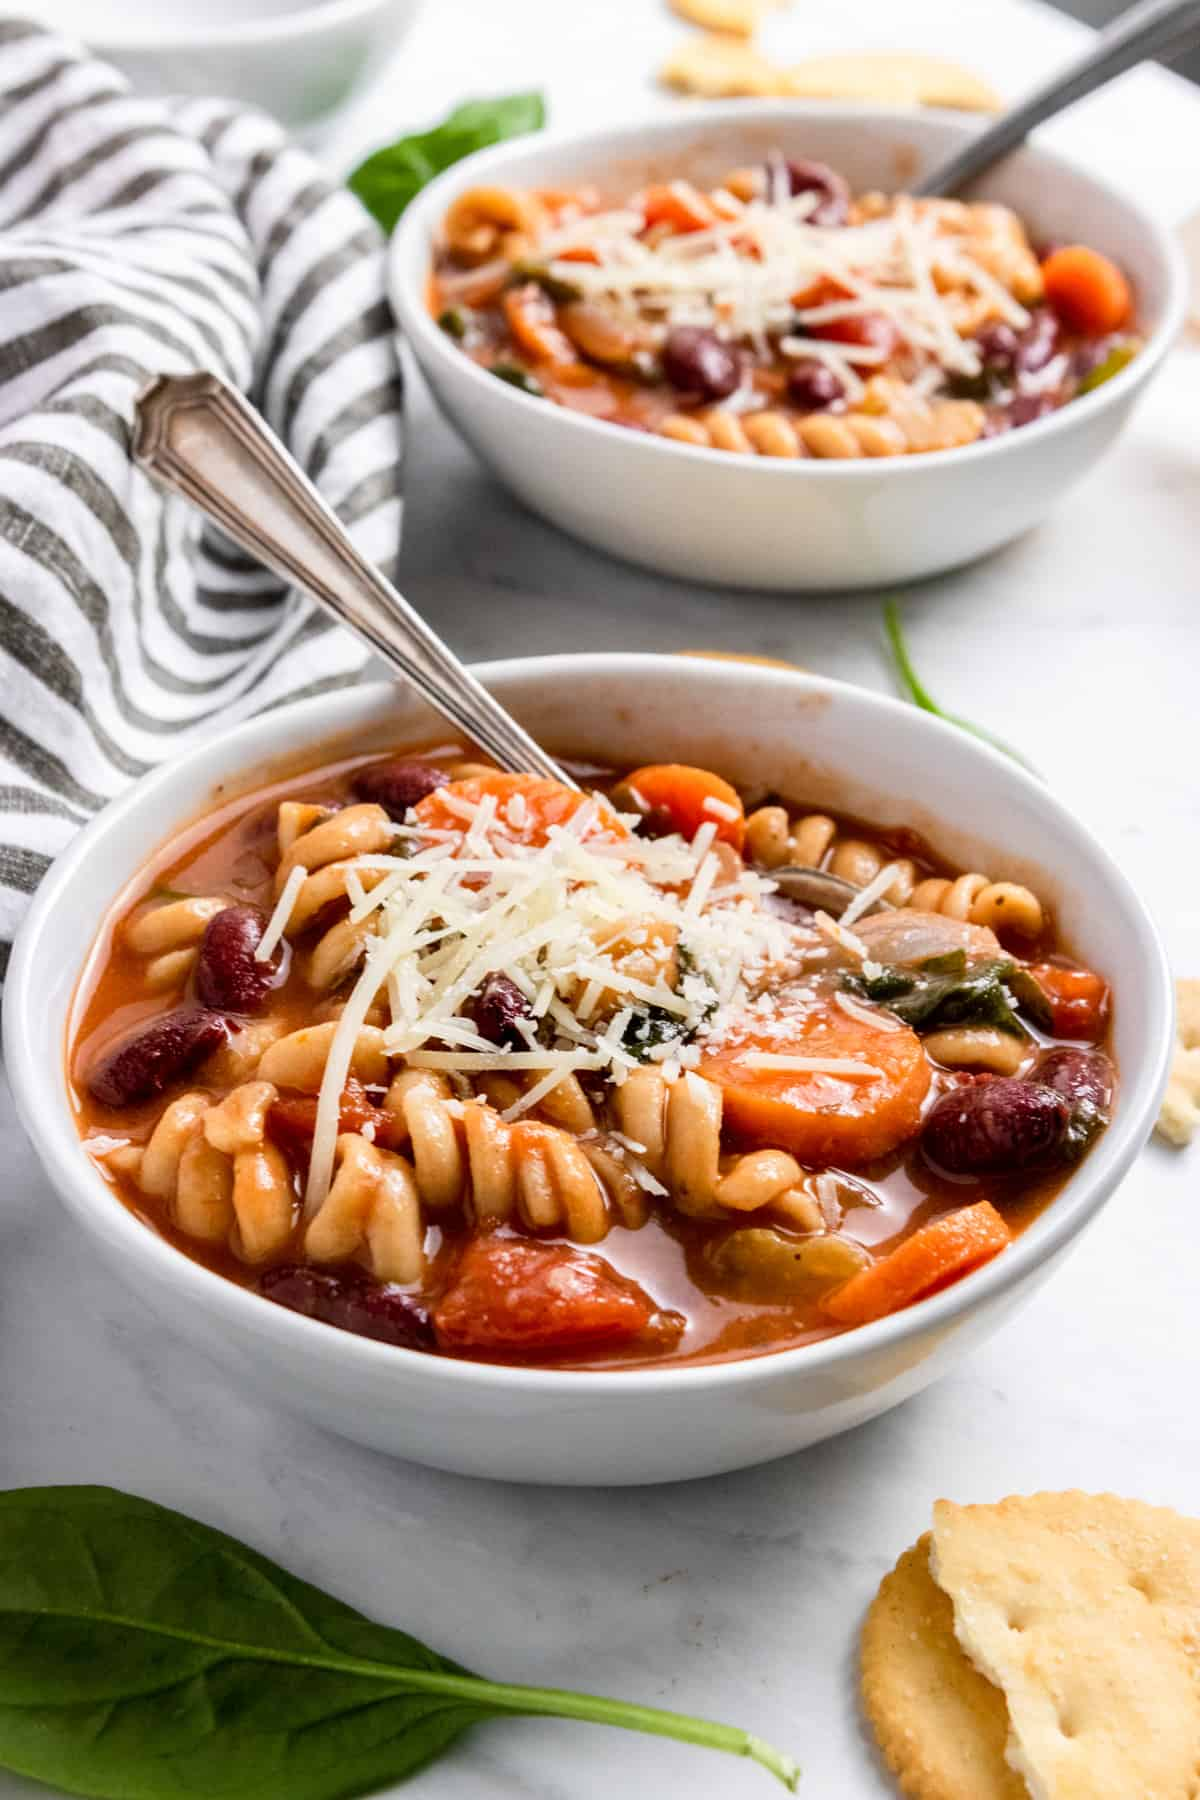 Chunky vegetable soup in bowl with spoon and cheese.